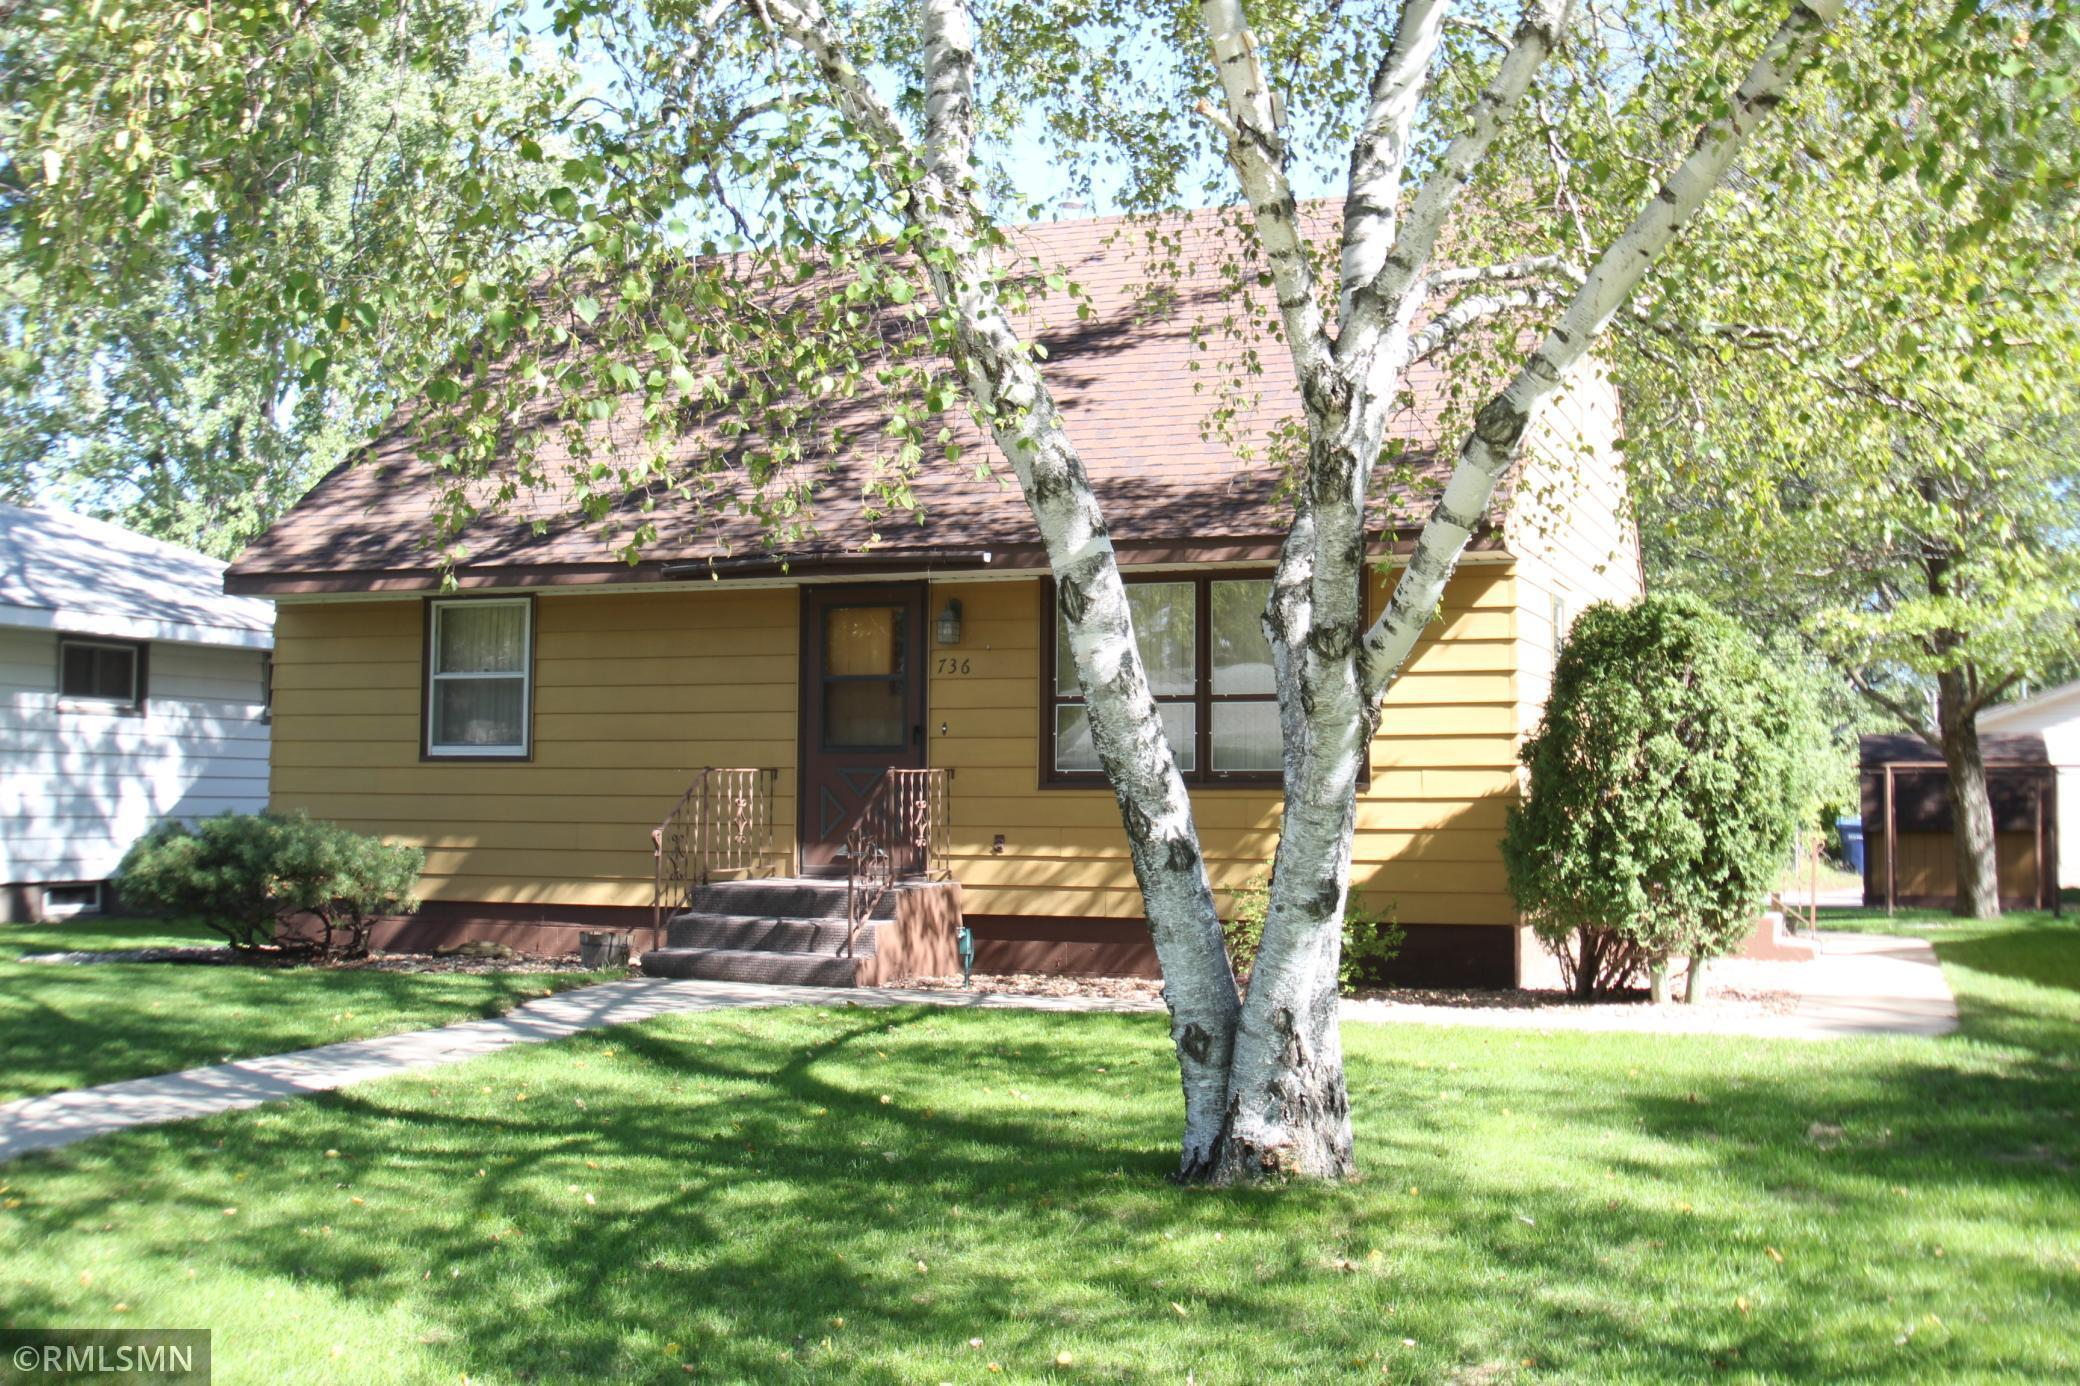 This cute conveniently located 3 bed, 1 bath home is sure to please. Features include central air conditioning, a two car garage, a storage shed and a large screened porch to spend your summer evenings relaxing in. Be sure to check out this home today.